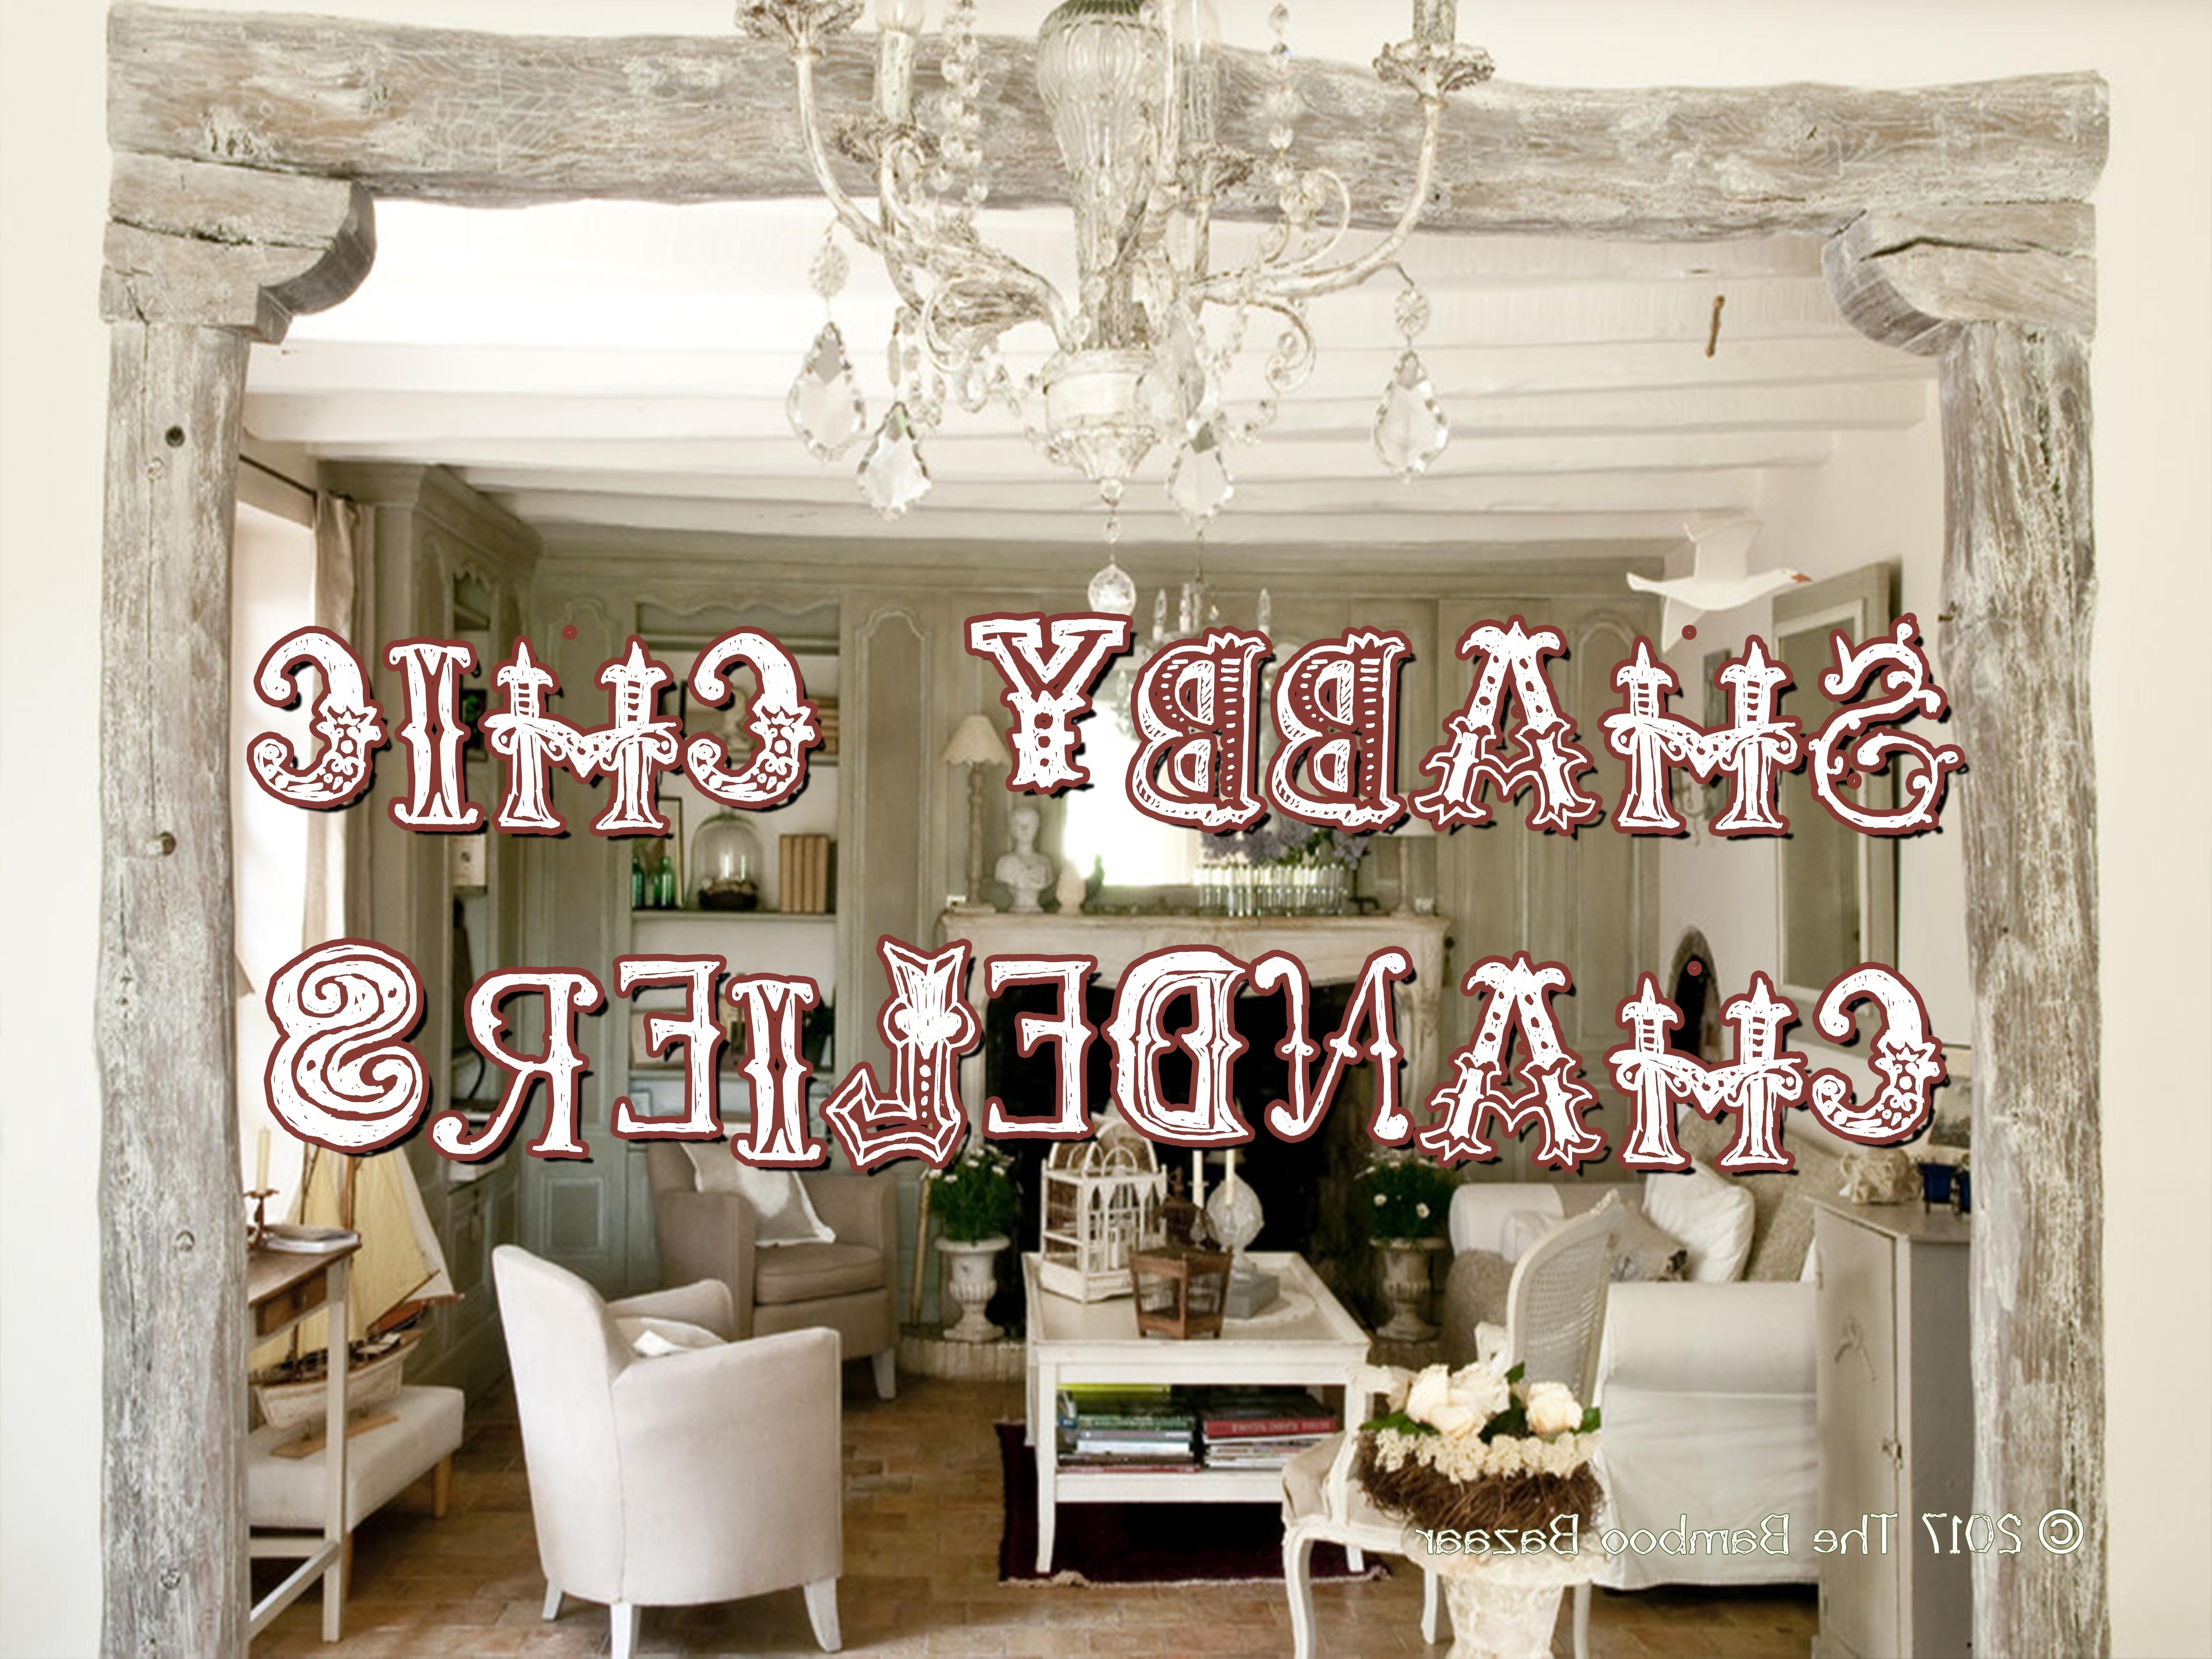 Shabby Chic Chandeliers In Most Current Rustic Shabby Chic Chandeliers, A Guide To The Best Of 2018! (View 11 of 15)